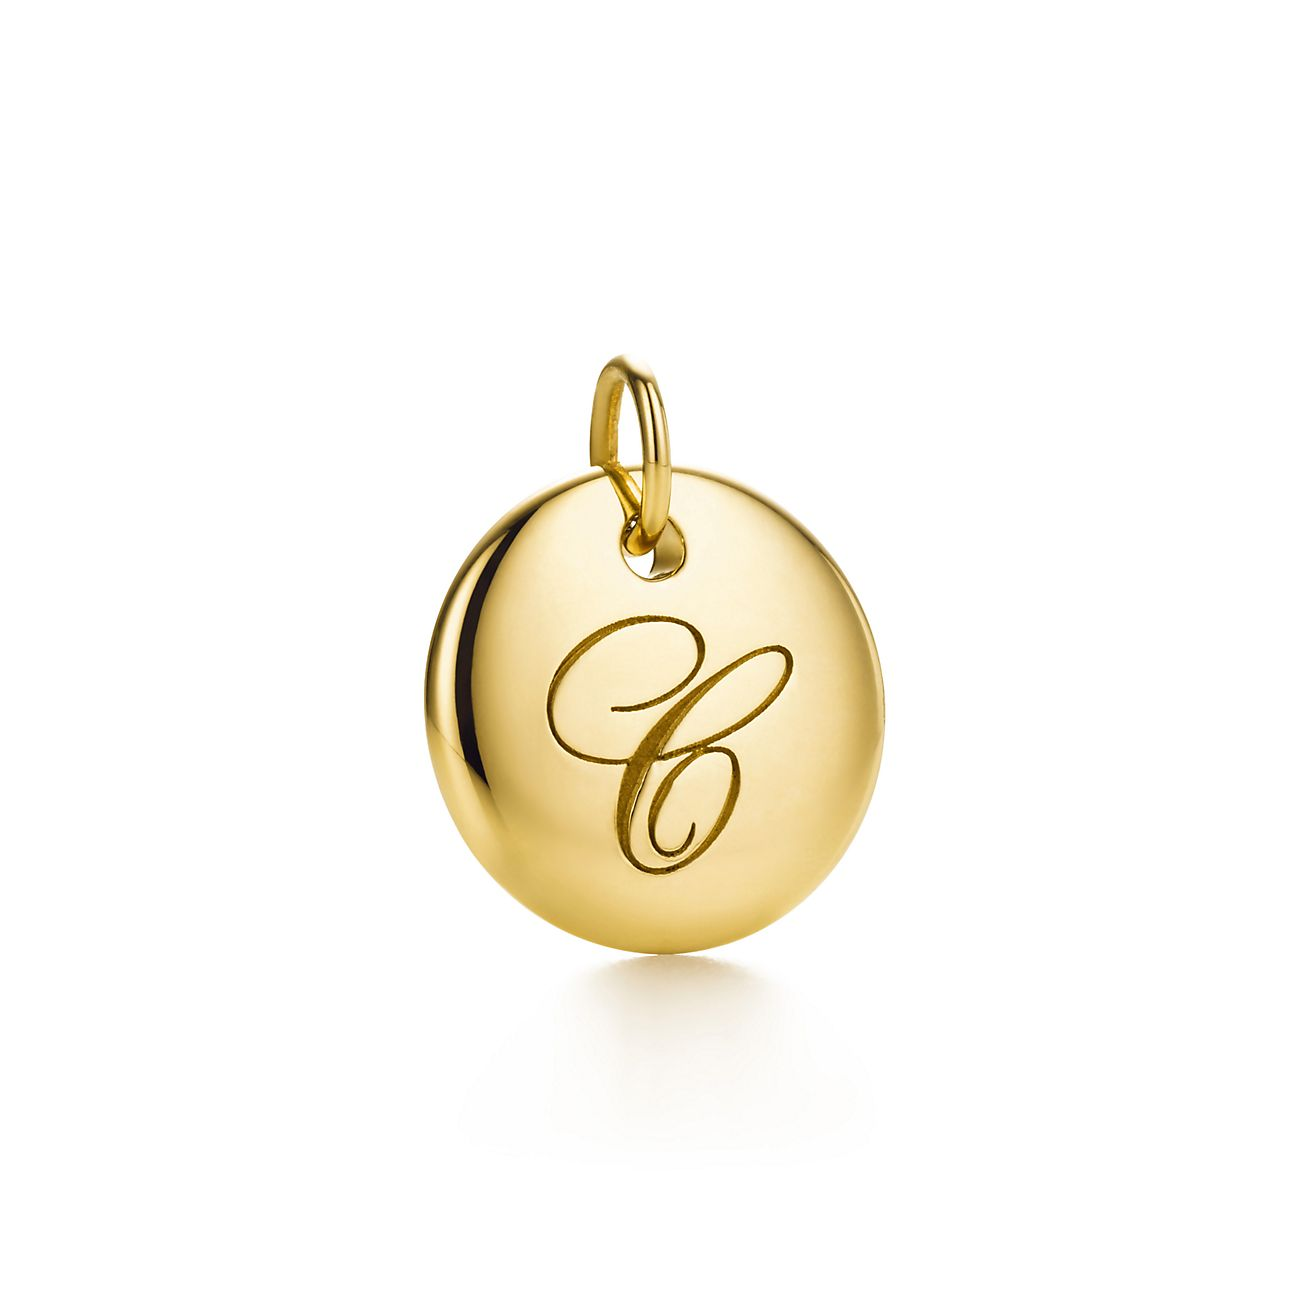 Tiffany Notes alphabet disc charm in 18k gold, small Letters A-Z available - Size C Tiffany & Co.